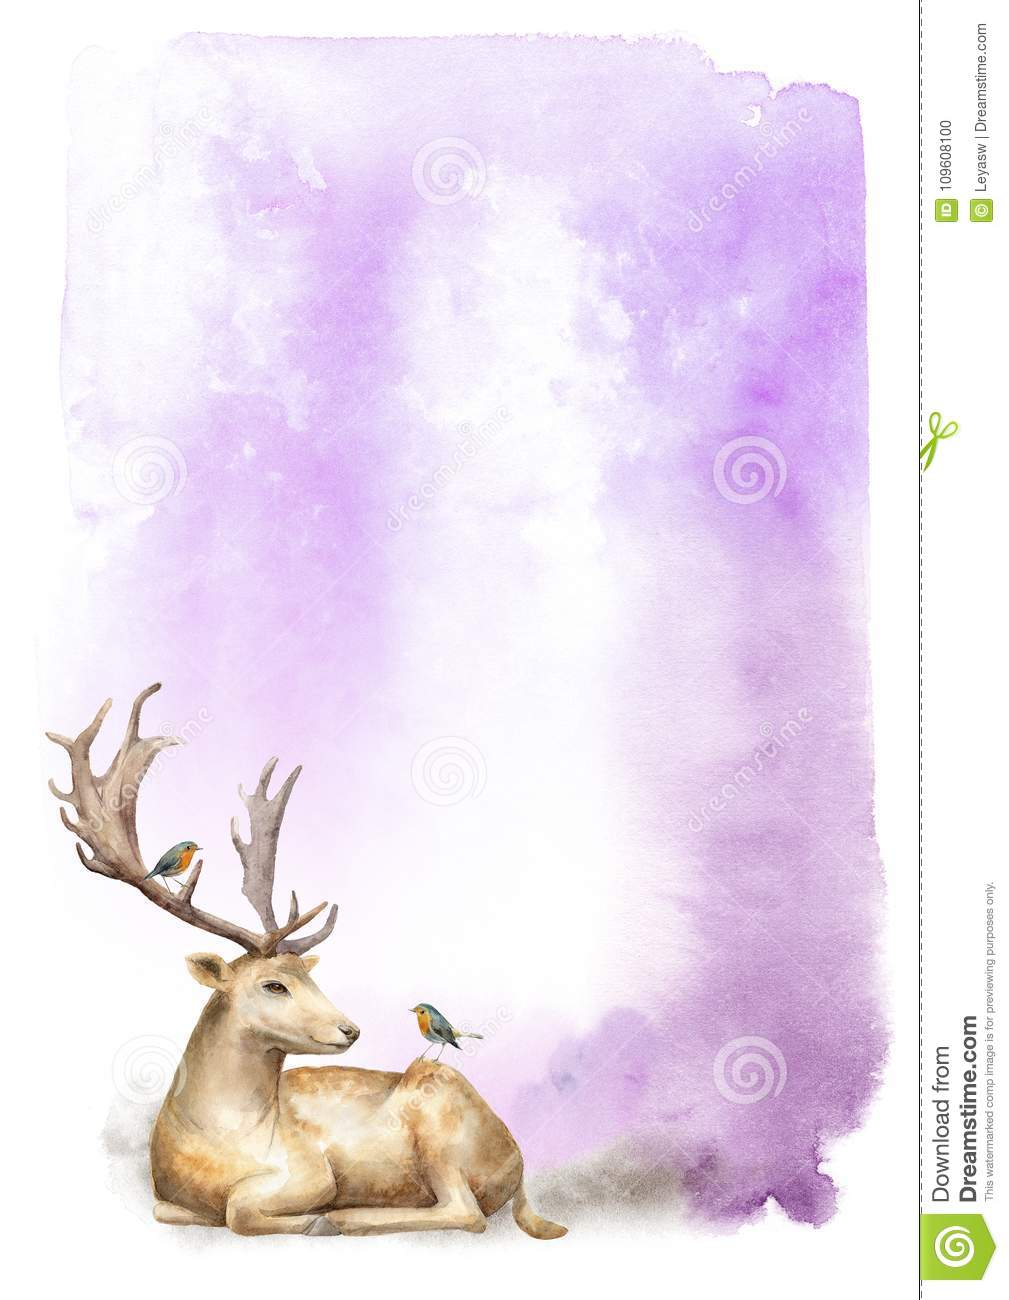 Abstract watercolor composition. A violet background with a forest deer male and birds Robin. Template for design.